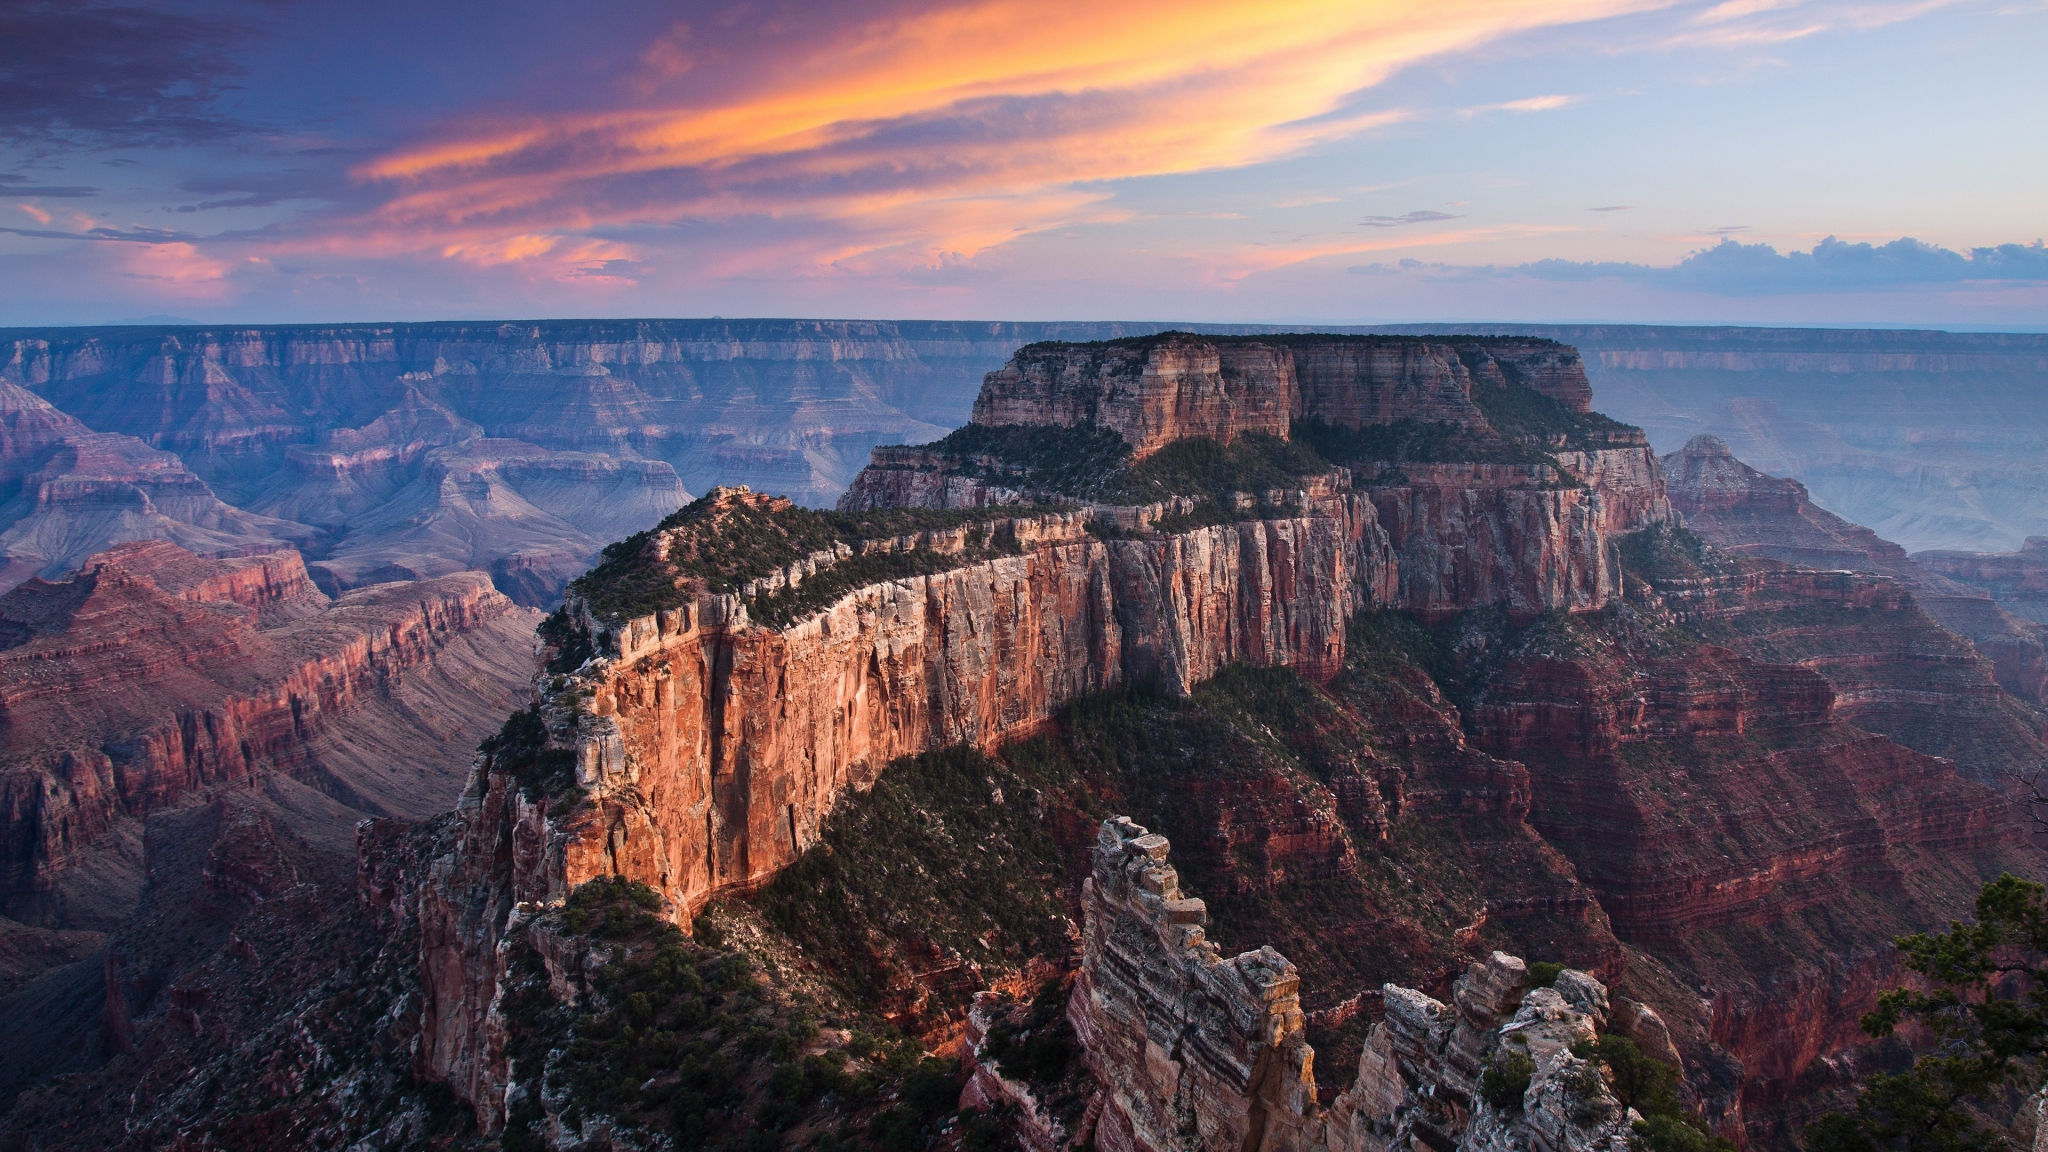 Hd wallpaper usa - The Grand Canyon Hd Wallpaper The Grand Canyon Background